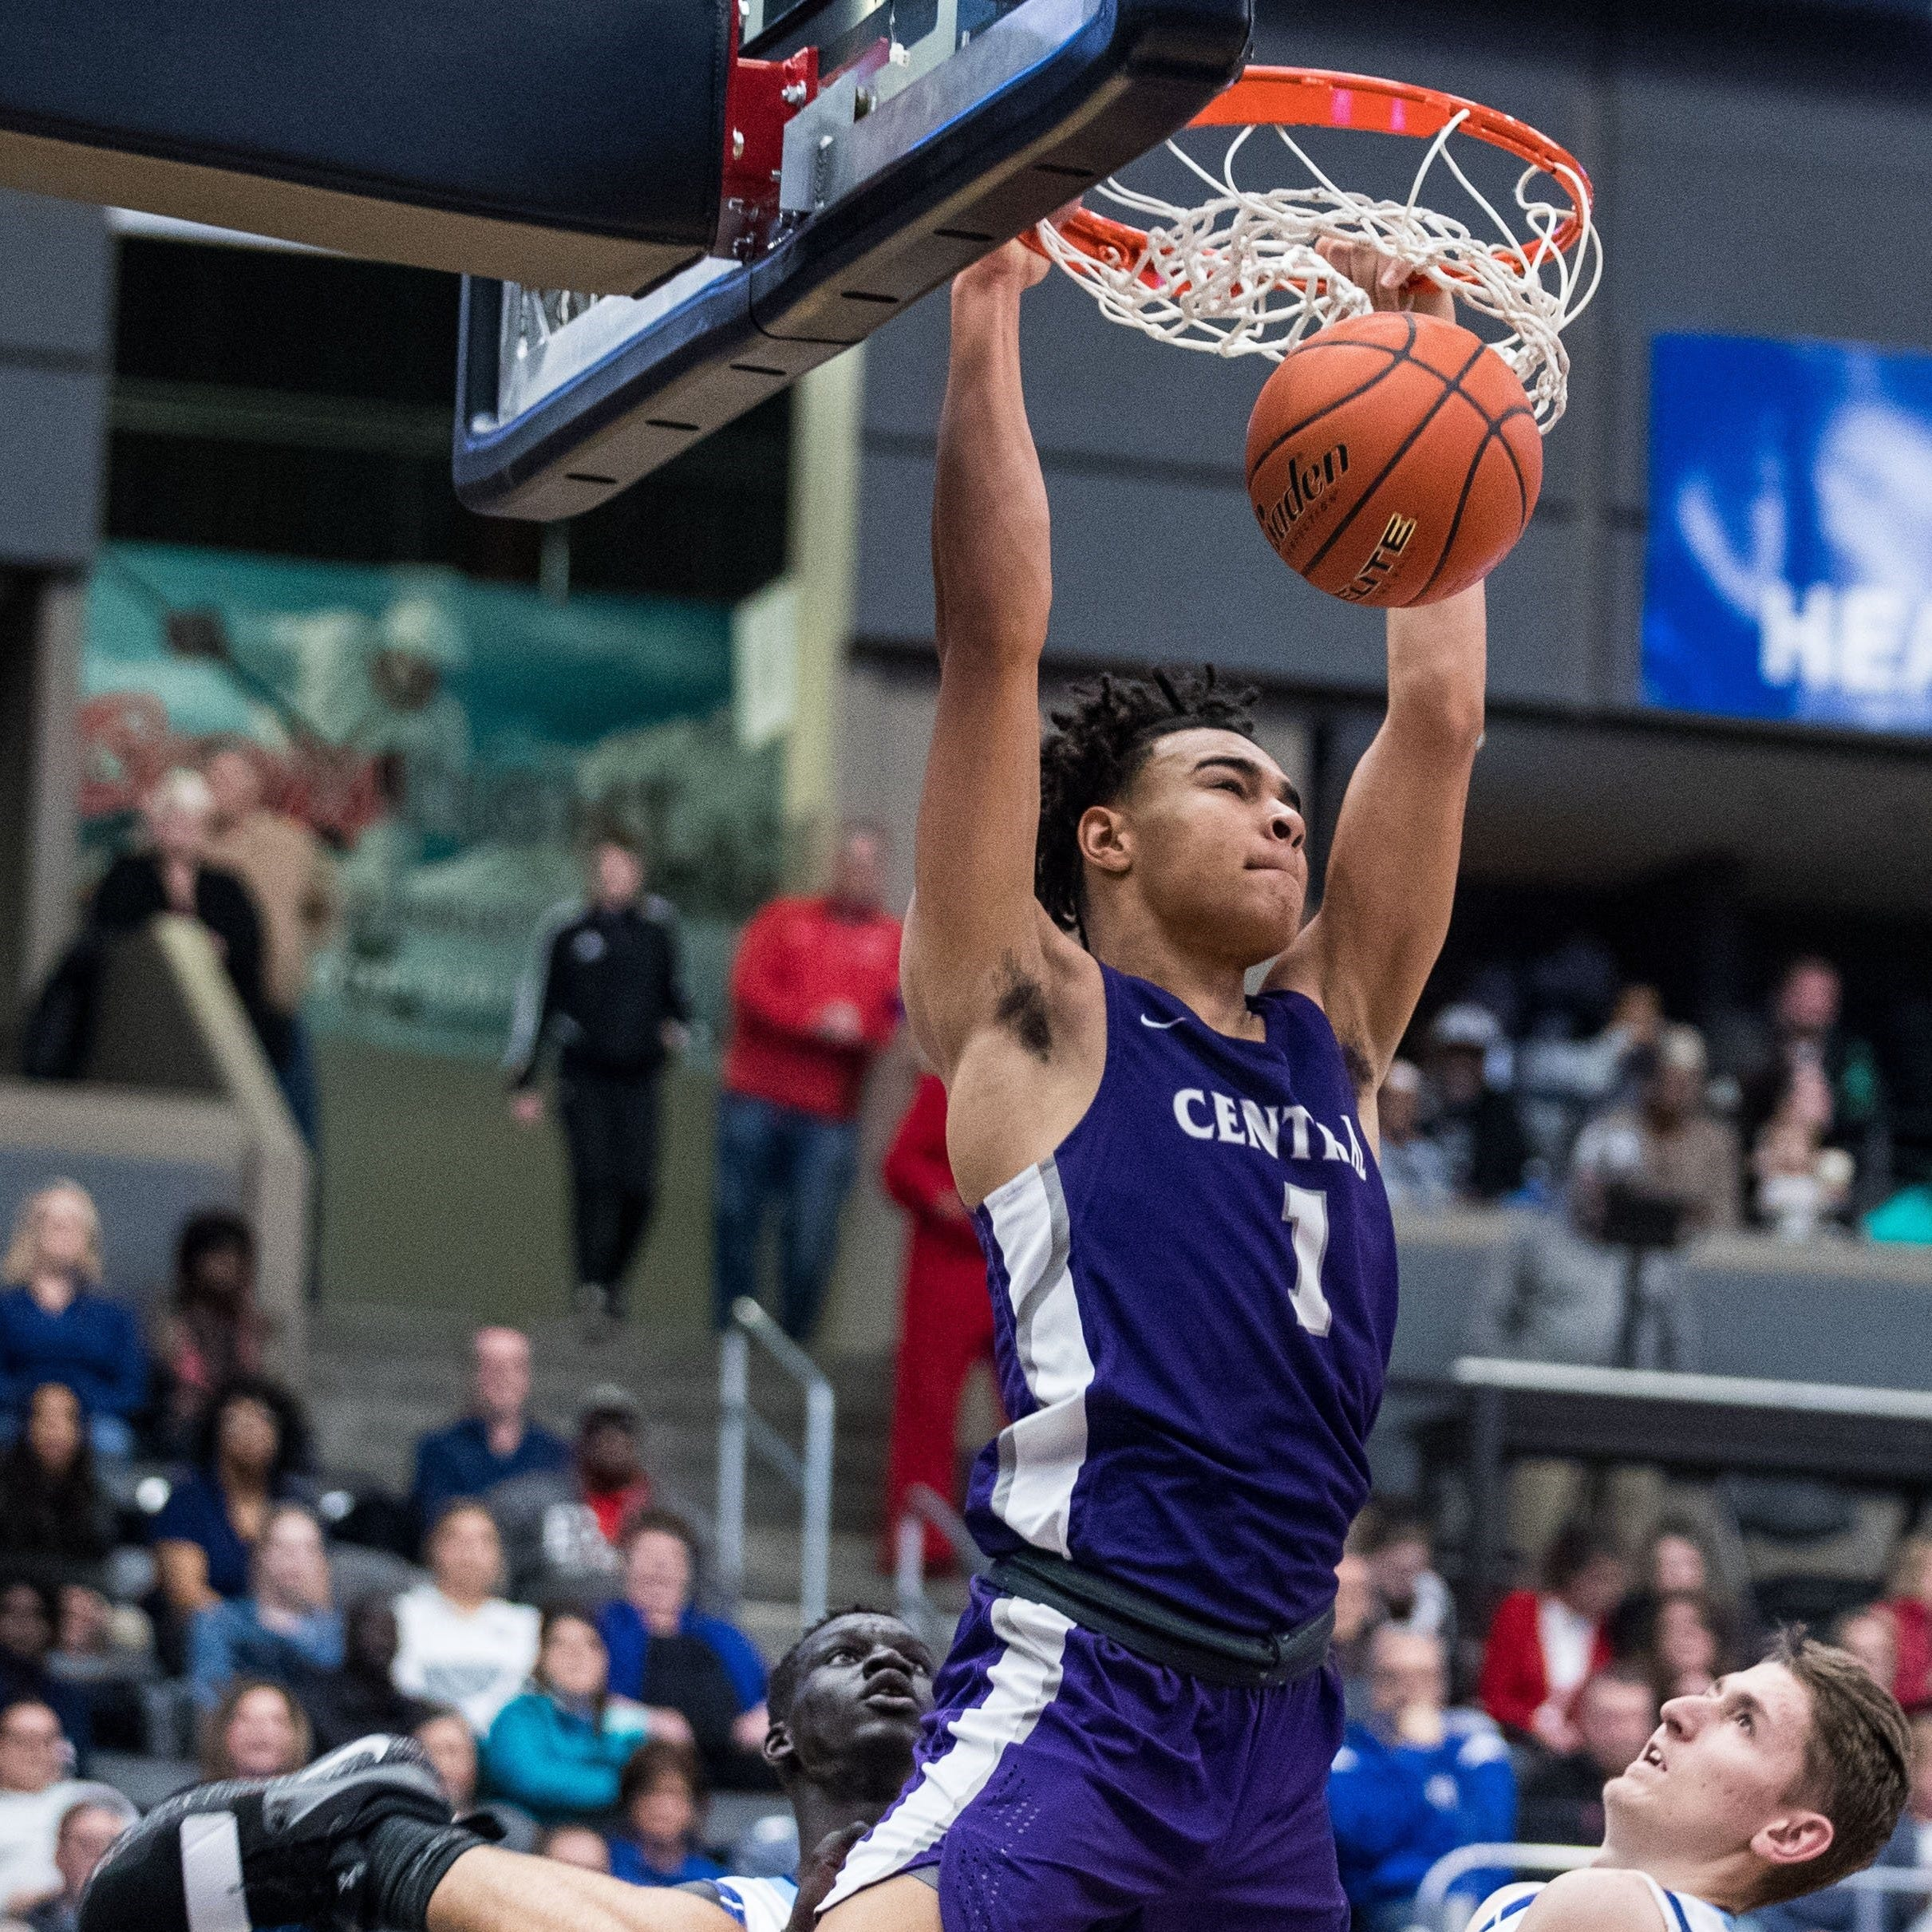 High-scoring guard from Nebraska commits to Colorado State basketball team